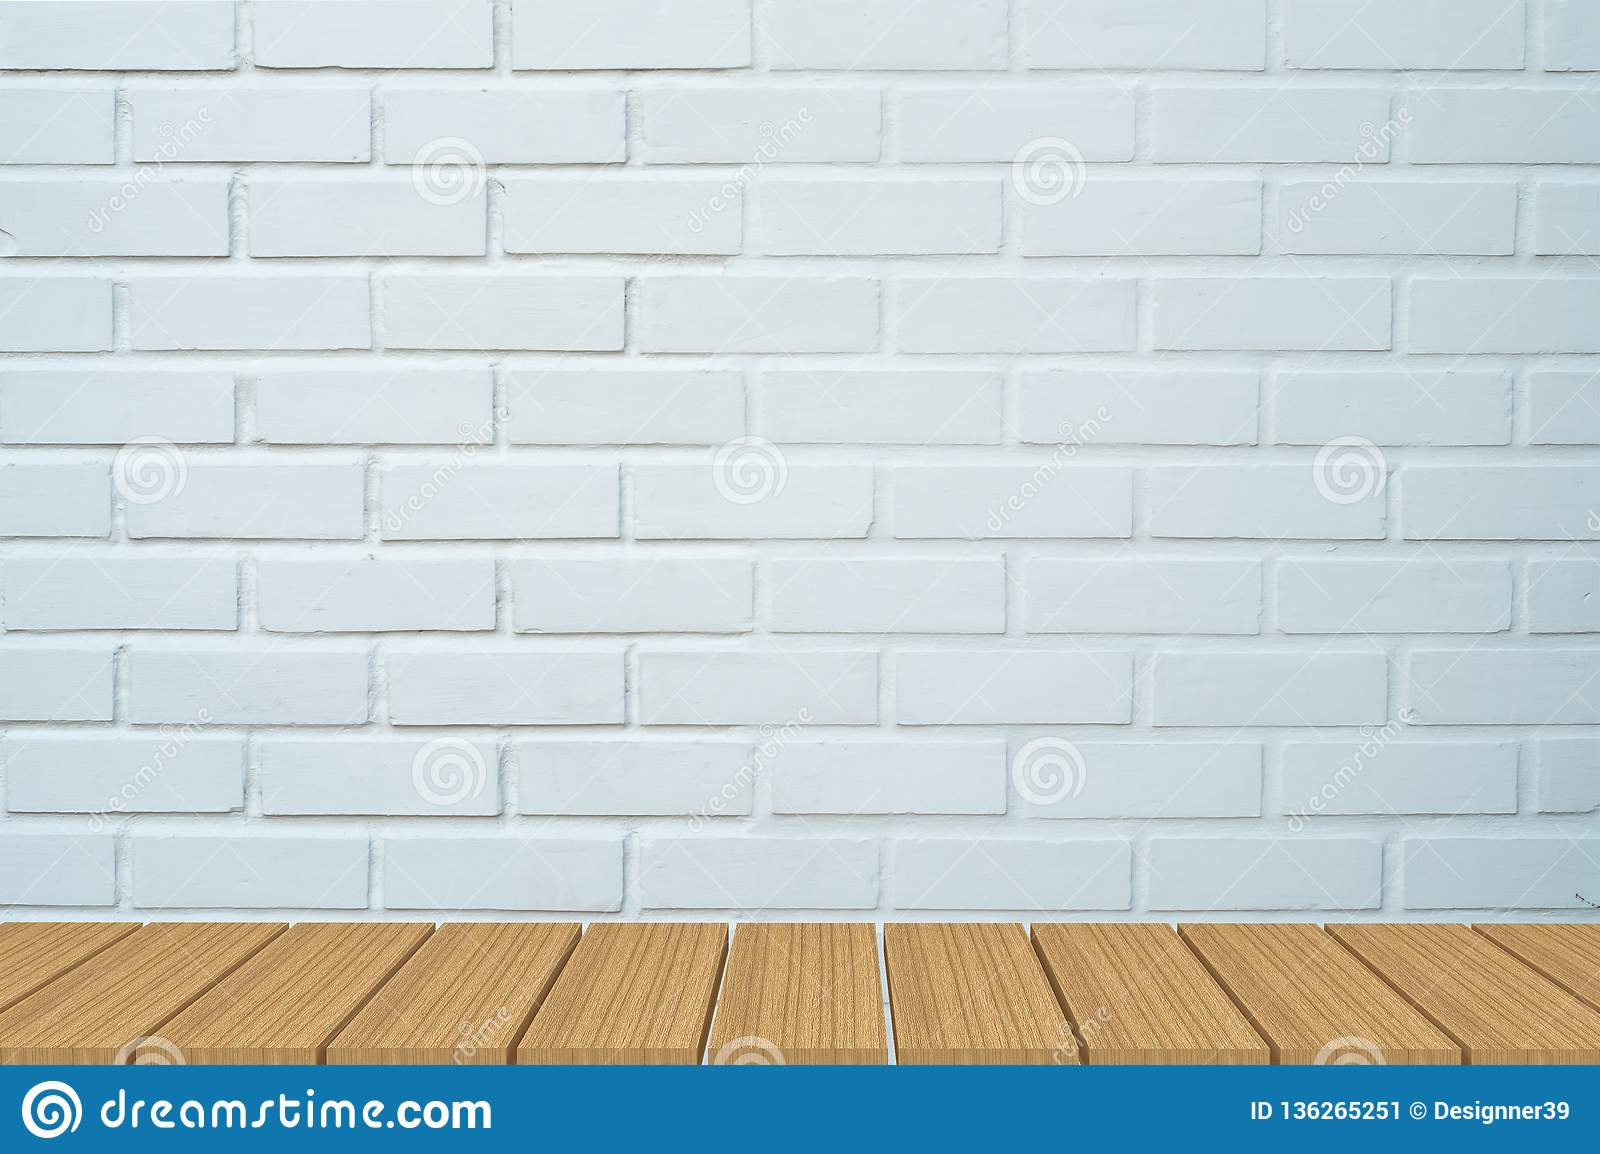 Empty table in front of white brick background.